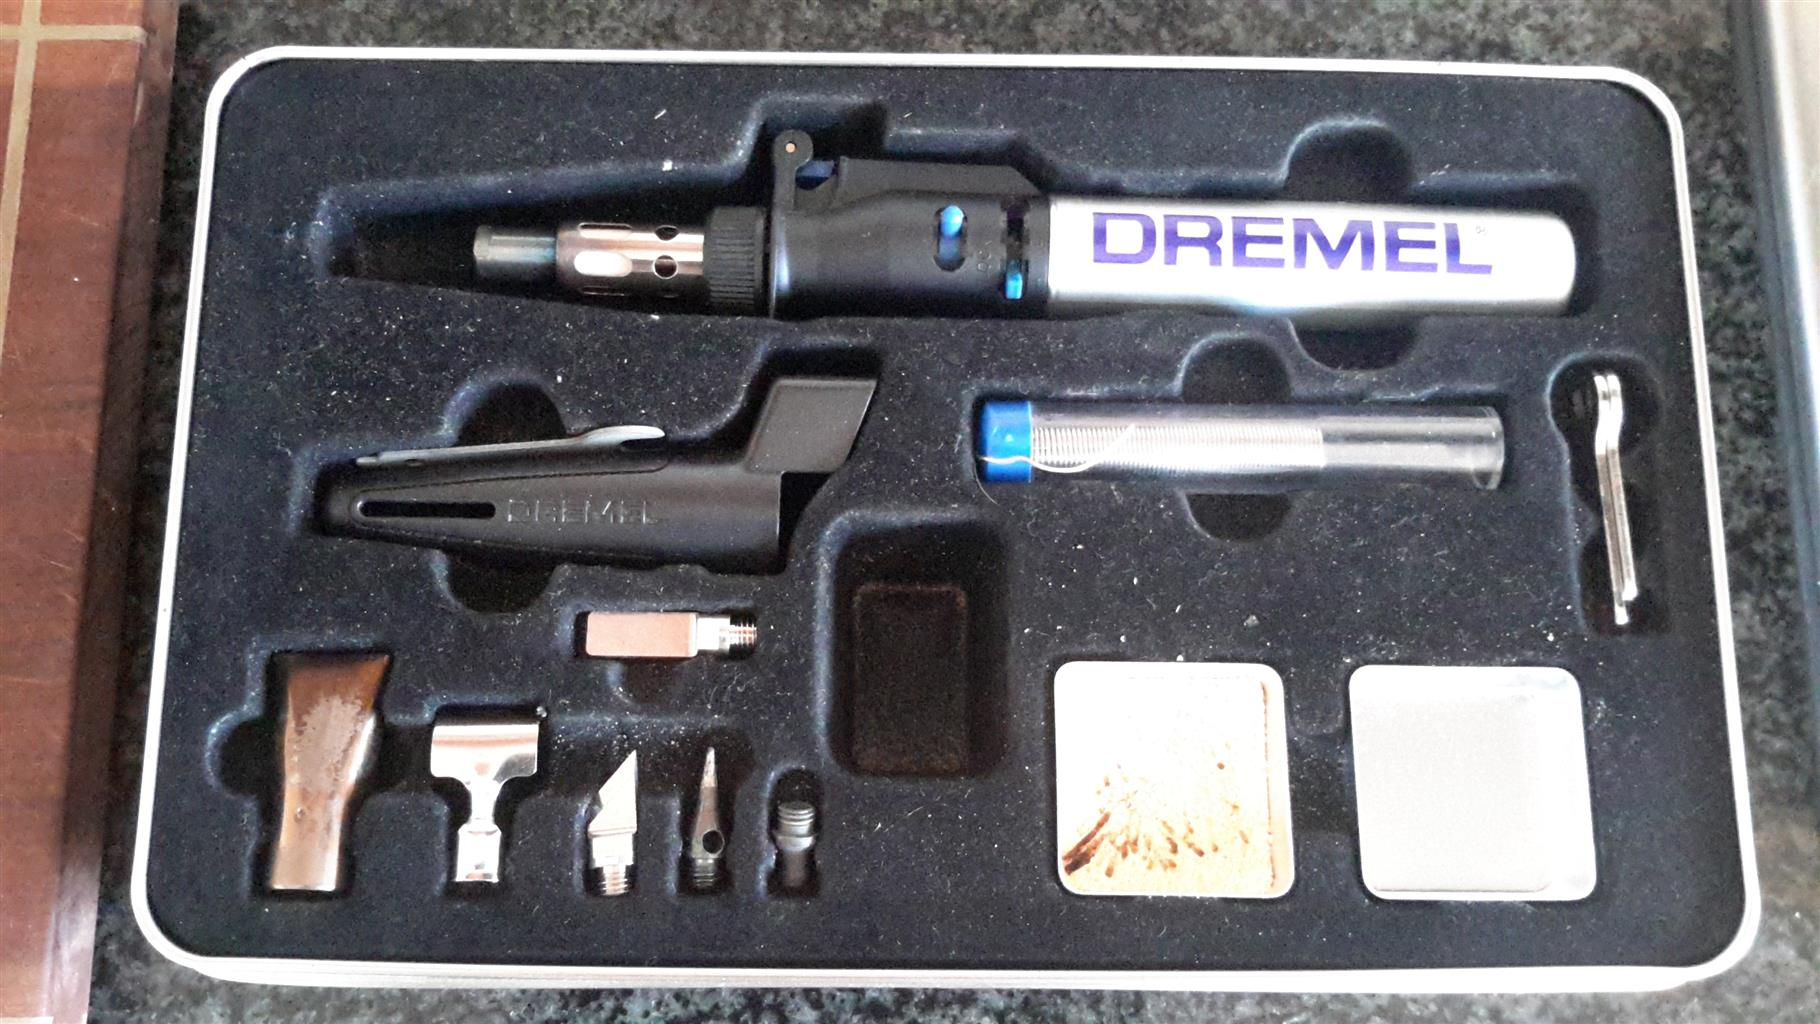 Dremel gas soldering iron and mini blow torch